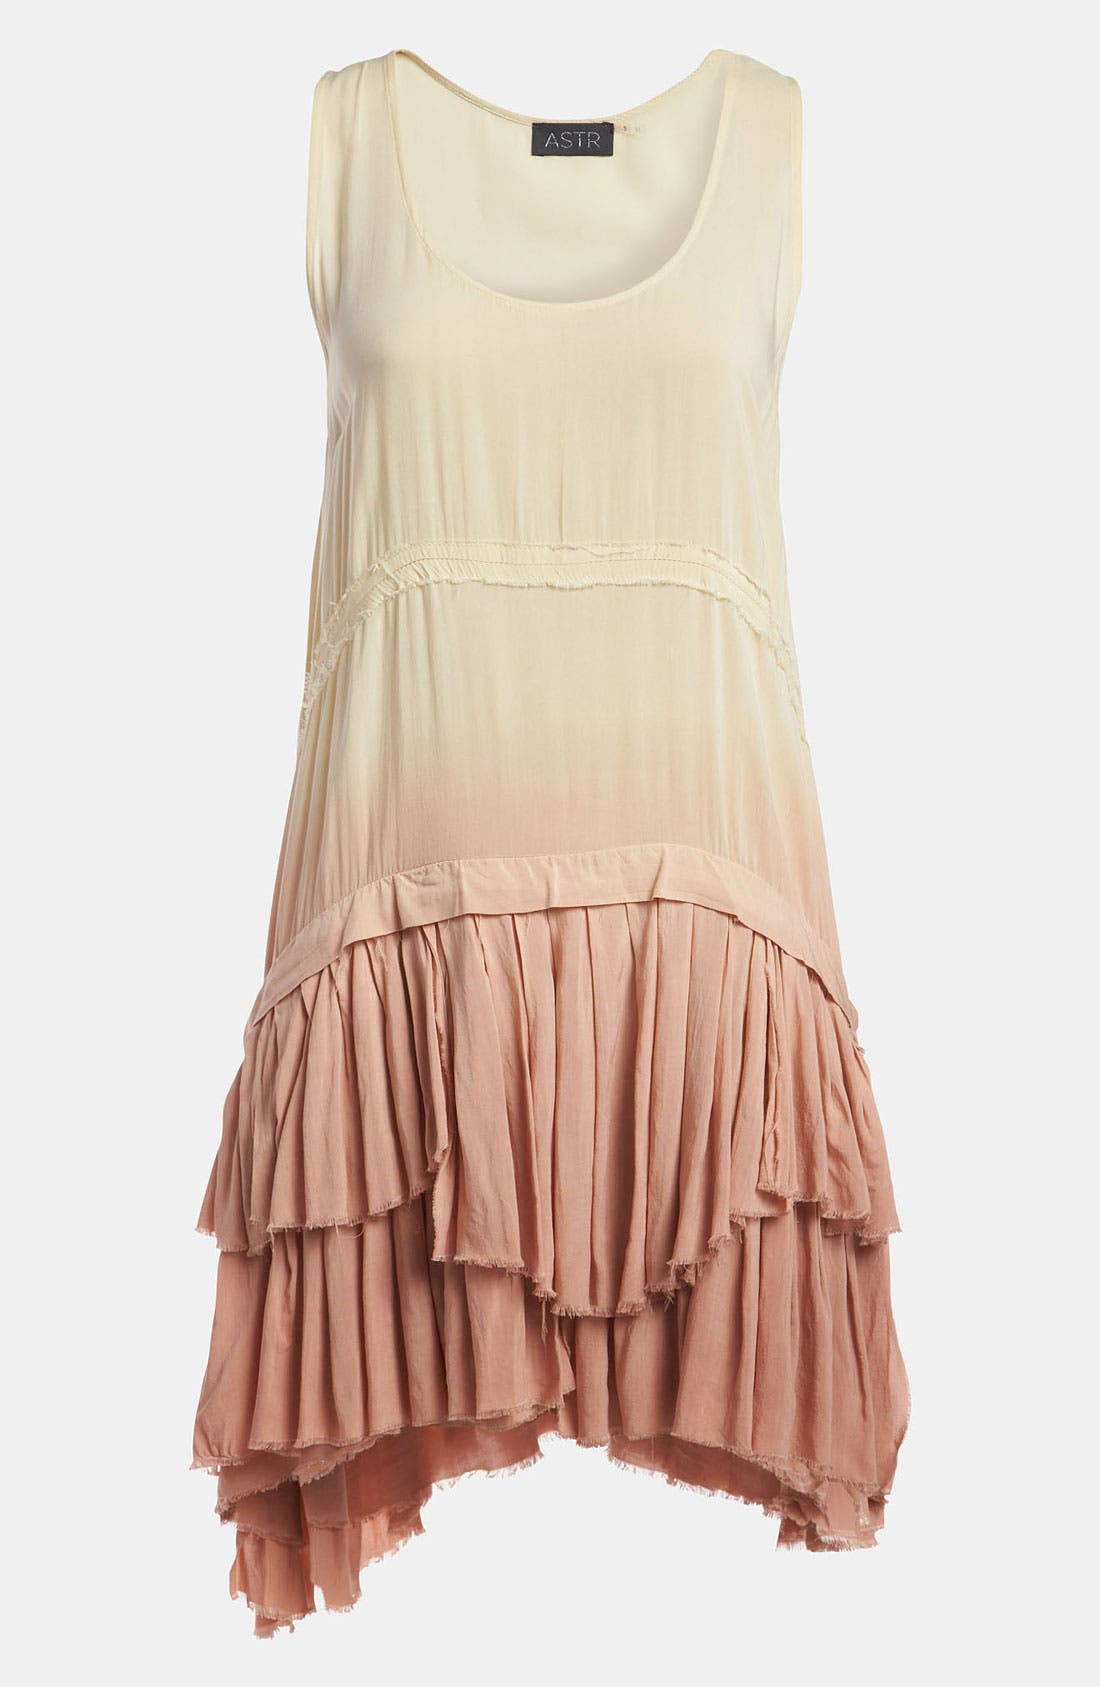 Alternate Image 1 Selected - ASTR 'Ra Ra Ruffle' Dip Dye Tank Dress